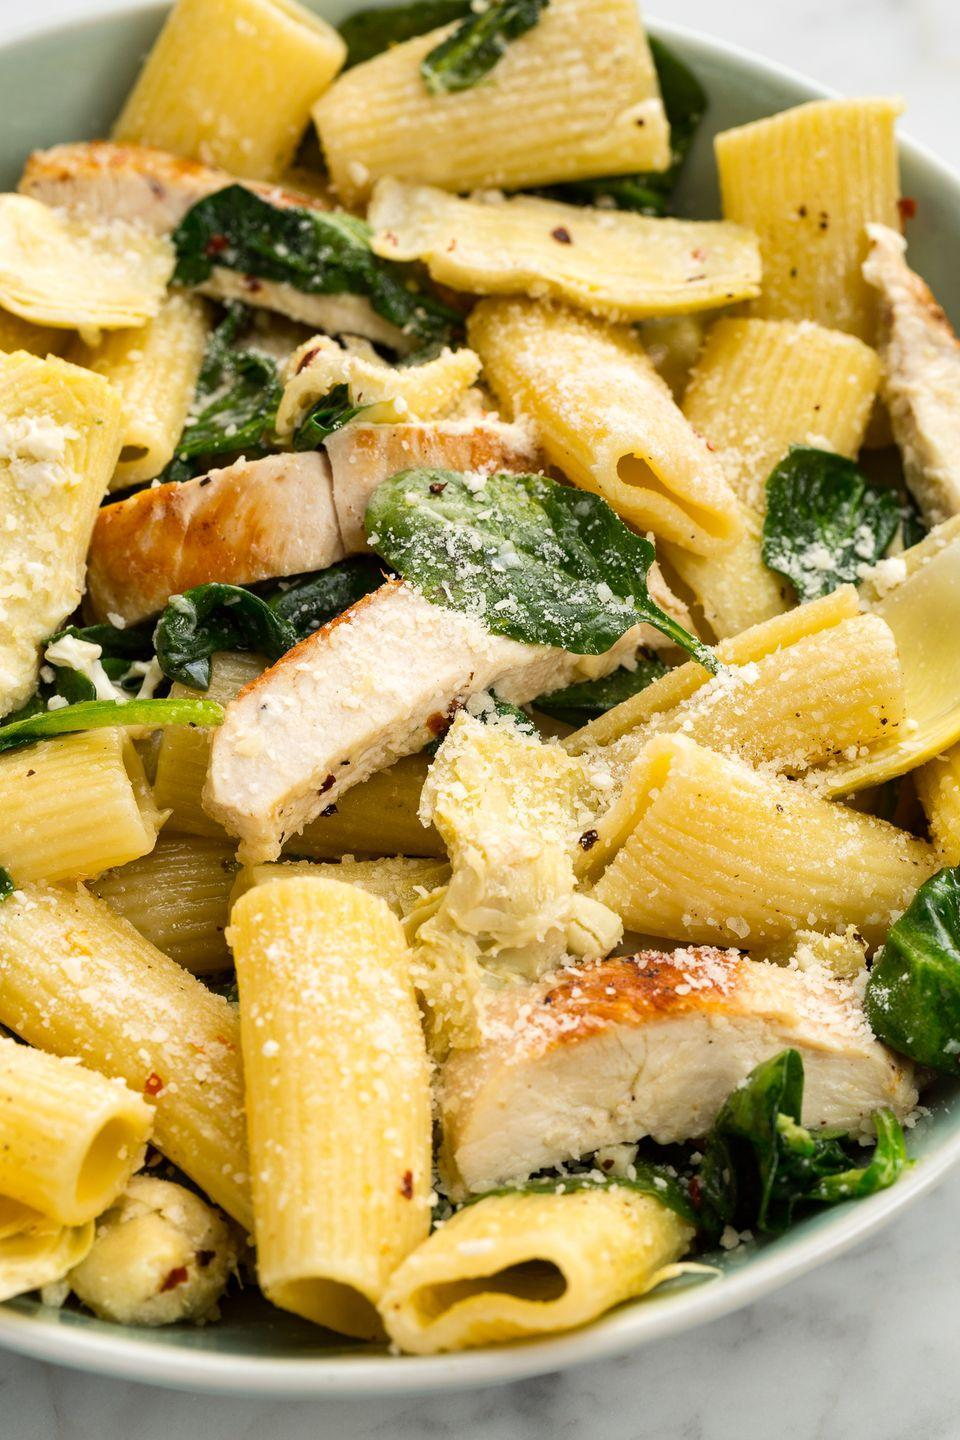 """<p>Your favorite dip deconstructed as a pasta? Yes, please.</p><p>Get the recipe from <a href=""""https://www.delish.com/cooking/recipe-ideas/recipes/a46527/chicken-spinach-and-artichoke-rigatoni-recipe/"""" rel=""""nofollow noopener"""" target=""""_blank"""" data-ylk=""""slk:Delish"""" class=""""link rapid-noclick-resp"""">Delish</a>.</p>"""